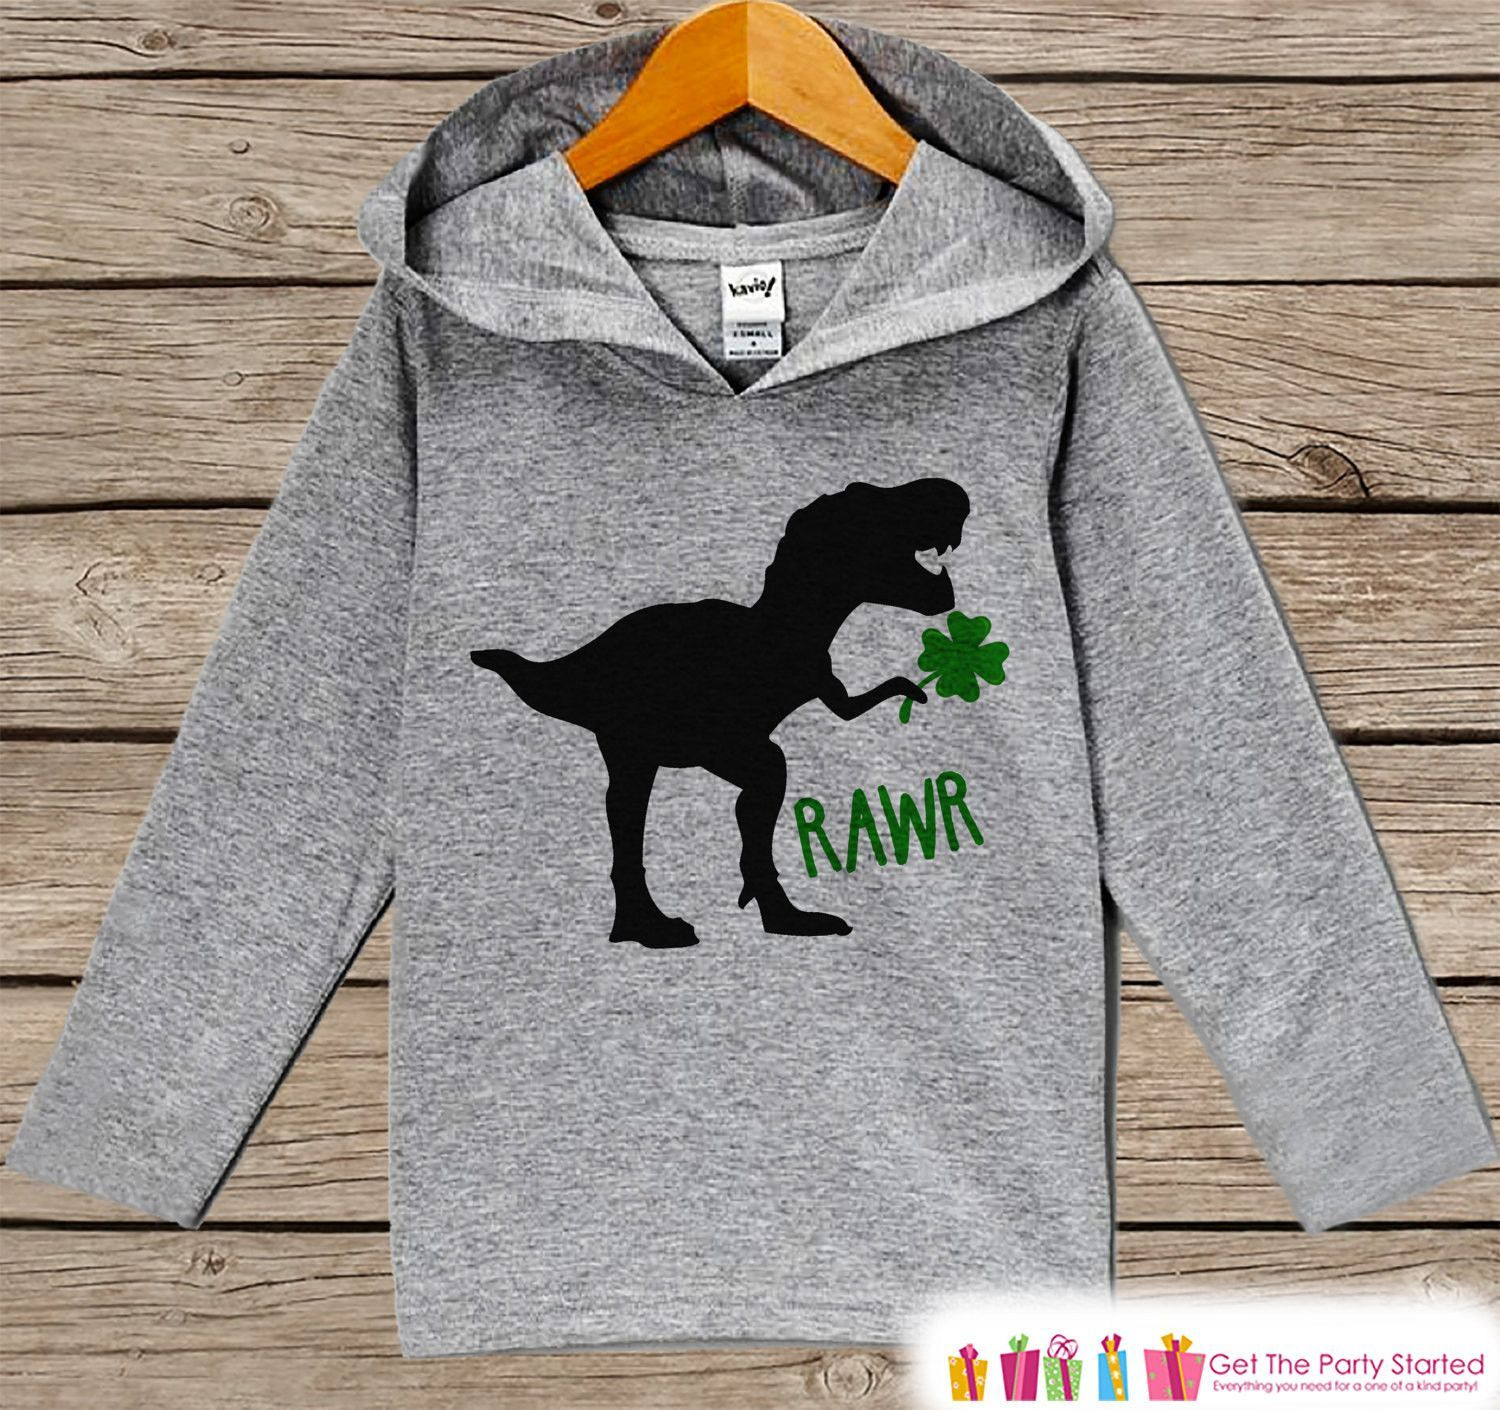 {Now Available} New product: Boys St Patricks .... Check it out here! http://7ate9apparel.com/products/boys-st-patricks-day-outfit-kids-dinosaur-clover-pullover-funny-boys-st-paddys-day-outfit-kids-baby-toddler-hoodie-lucky-dino?utm_campaign=social_autopilot&utm_source=pin&utm_medium=pin